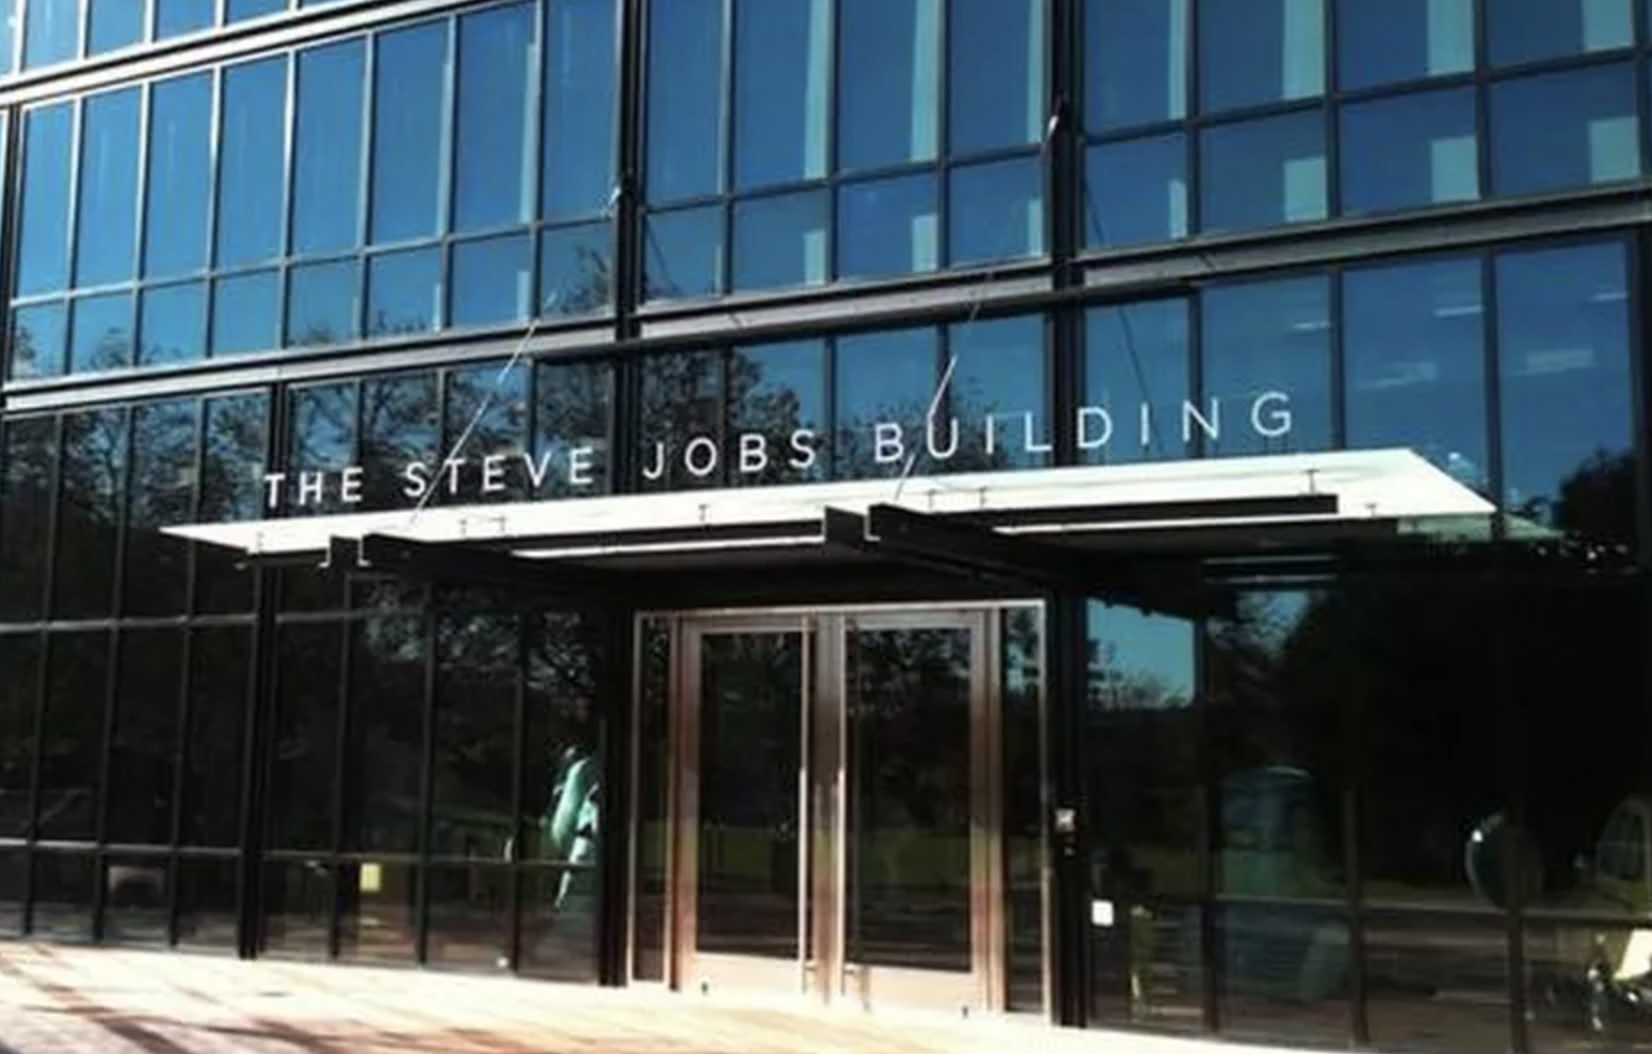 The Steve Jobs Building at Pixar Animation Studios